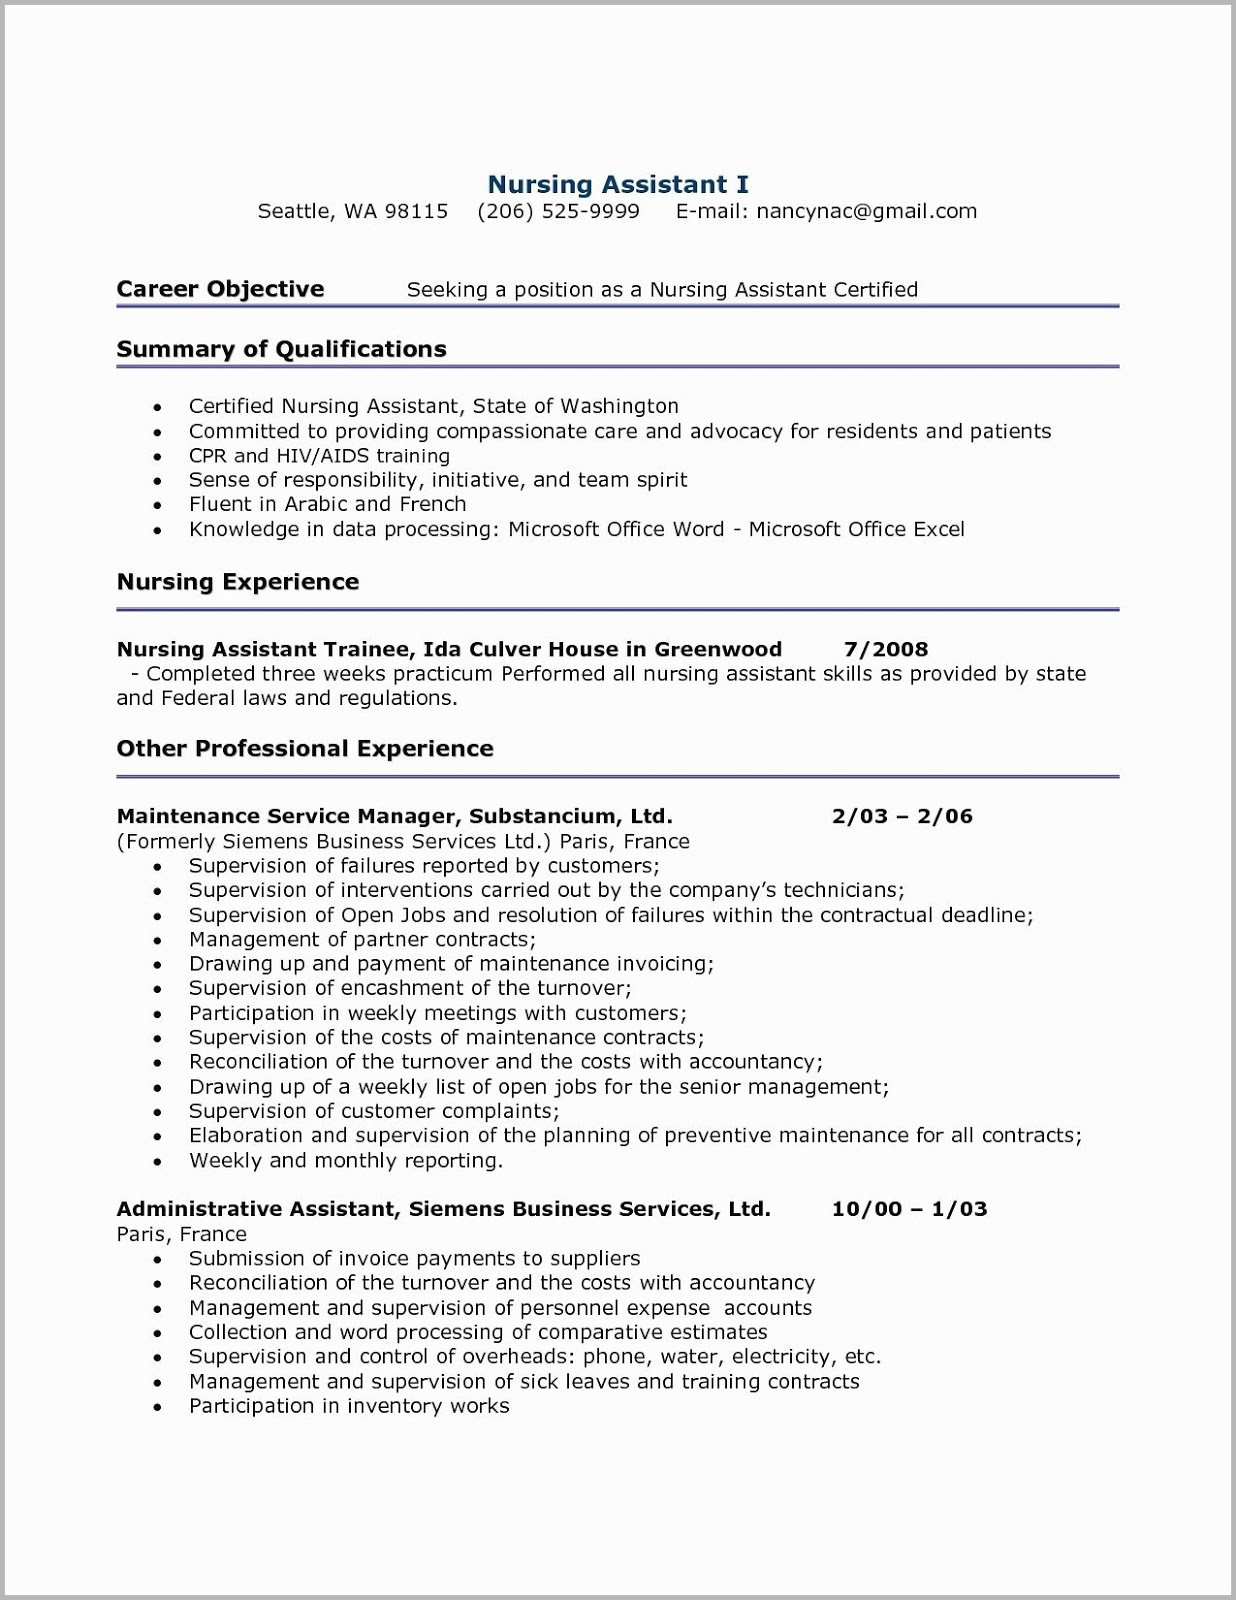 Administrative Assistant Resume Summary, administrative assistant resume summary examples, administrative assistant resume summary 2019